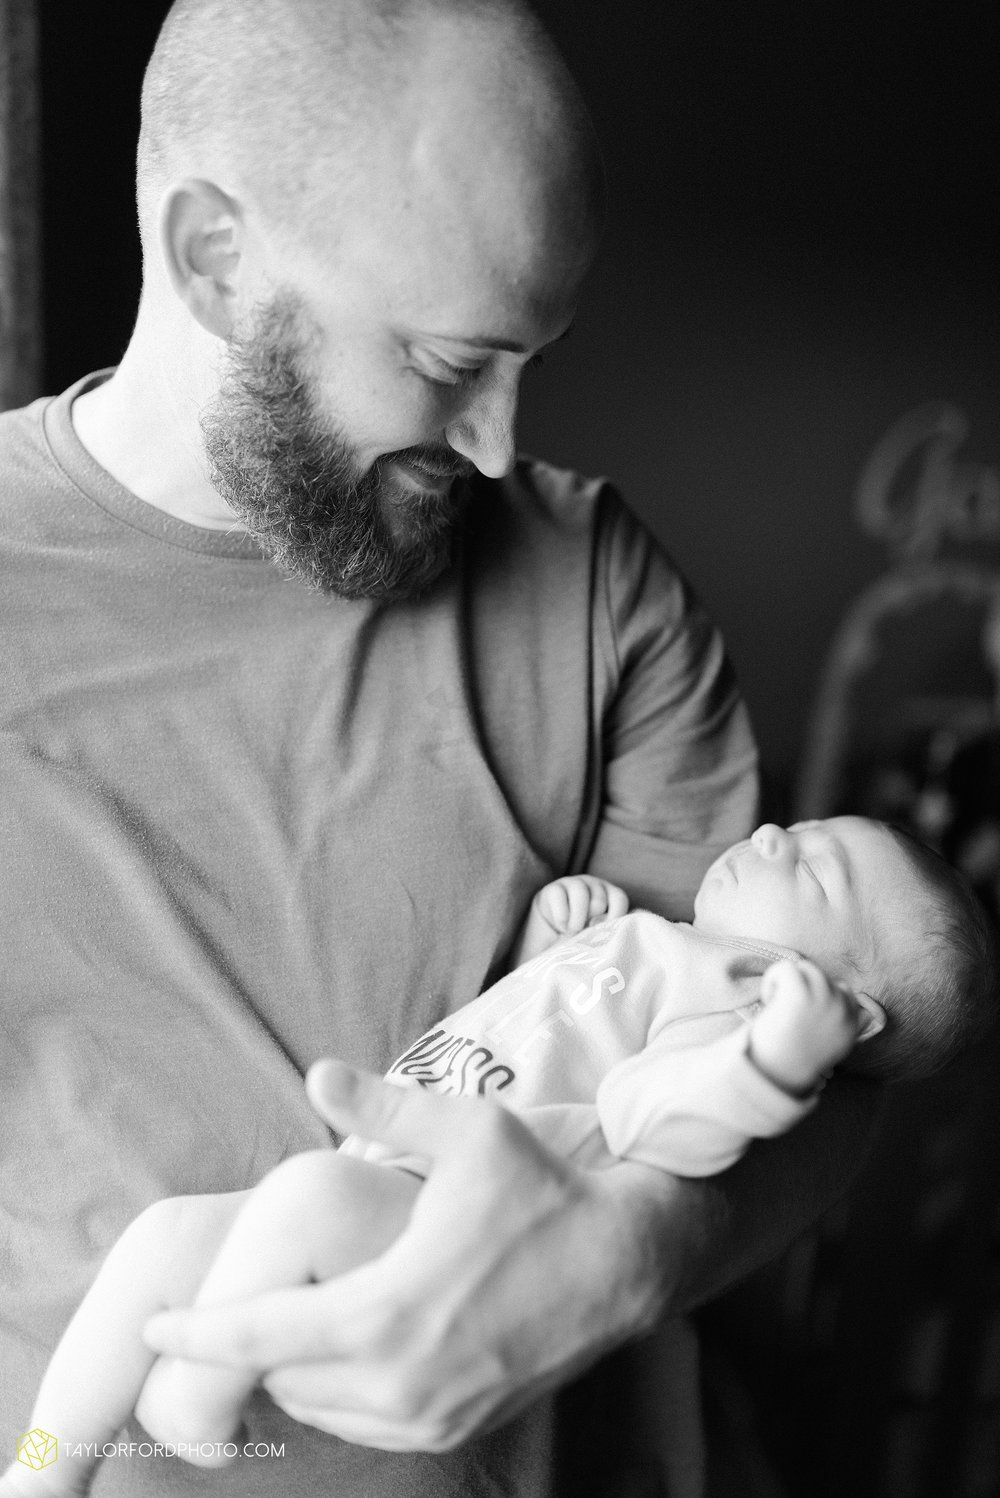 fort-wayne-indiand-newborn-lifestyle-family-at-home-photographer-taylor-ford-photography_0326.jpg